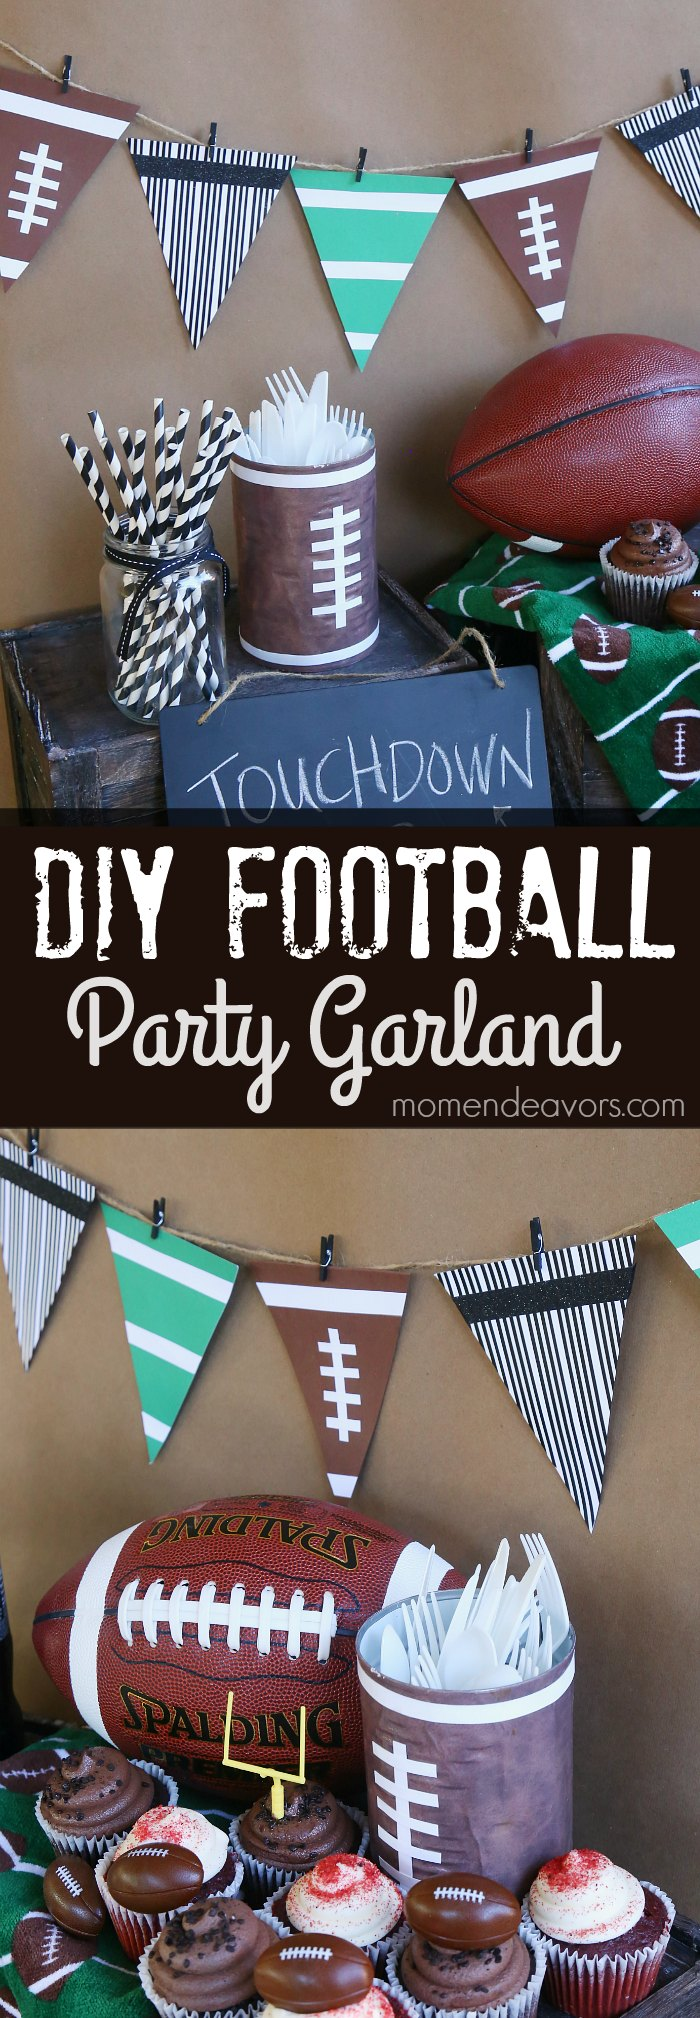 diy-football-party-garland